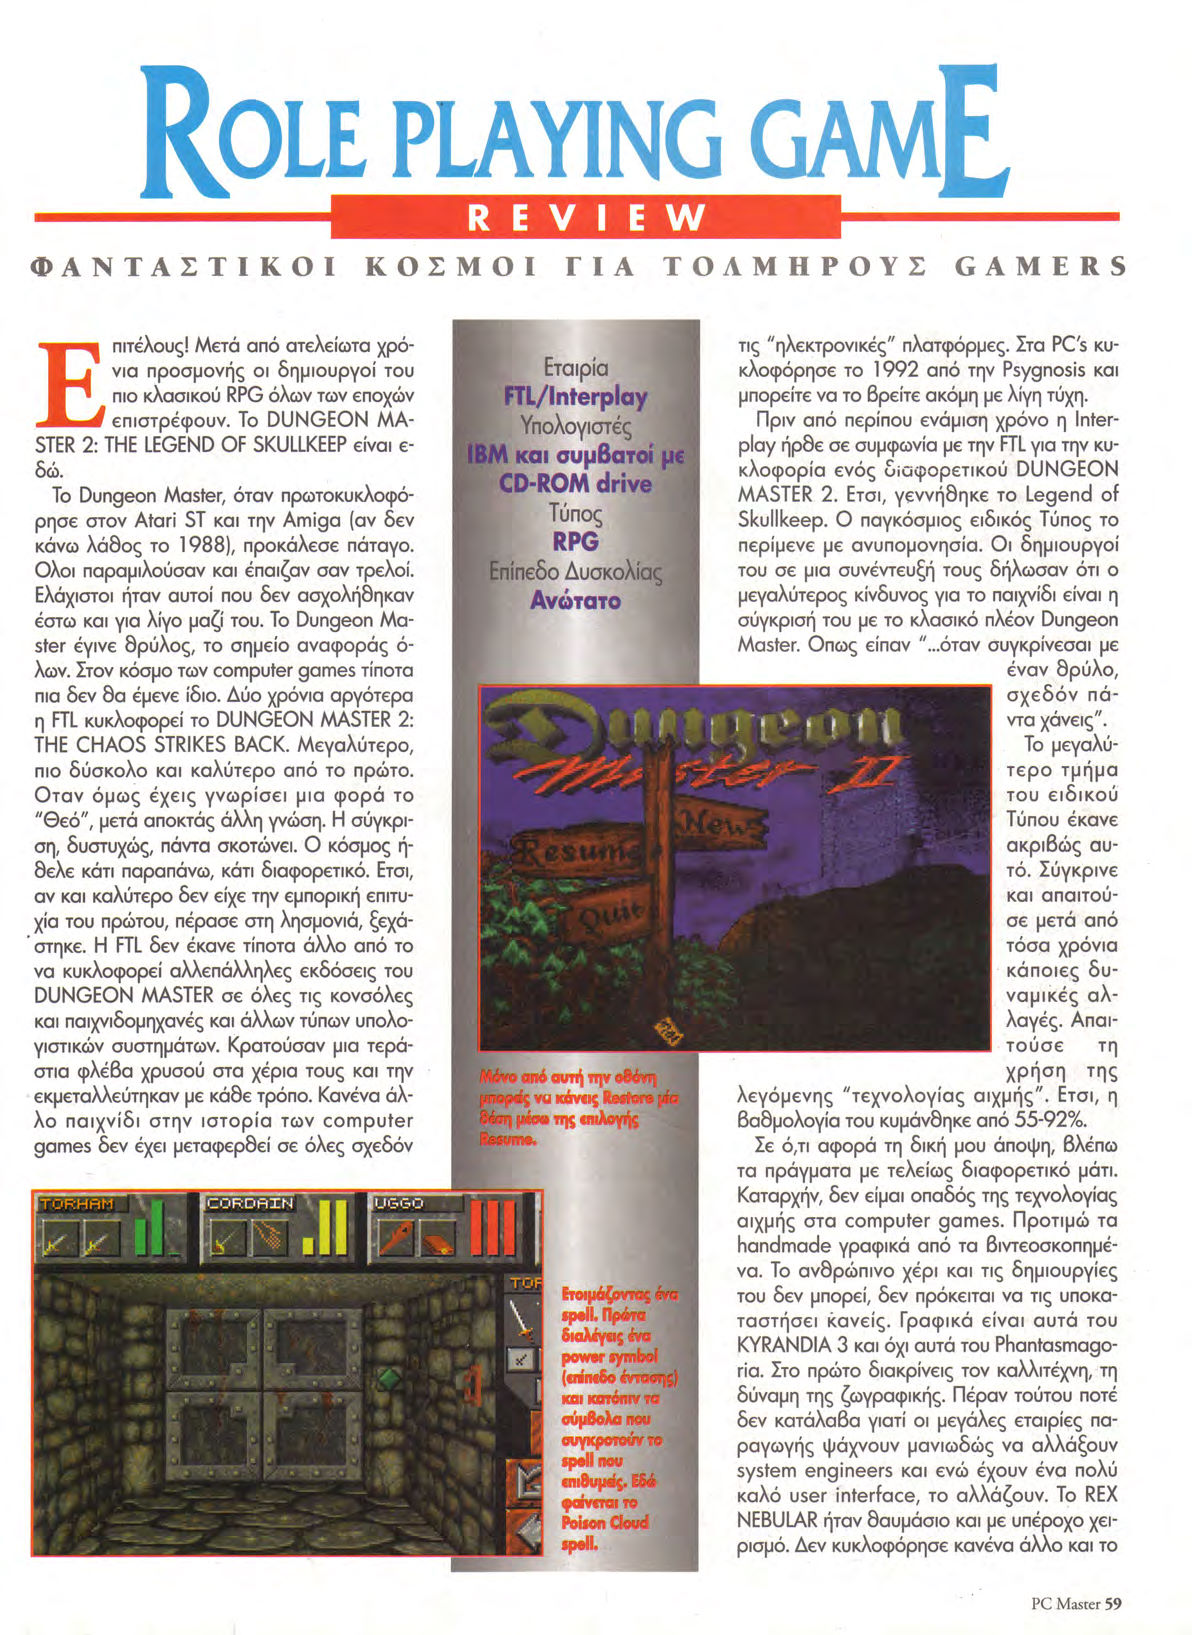 Dungeon Master II for PC Review published in Greek magazine 'PC Master', Issue #67 November 1995, Page 59